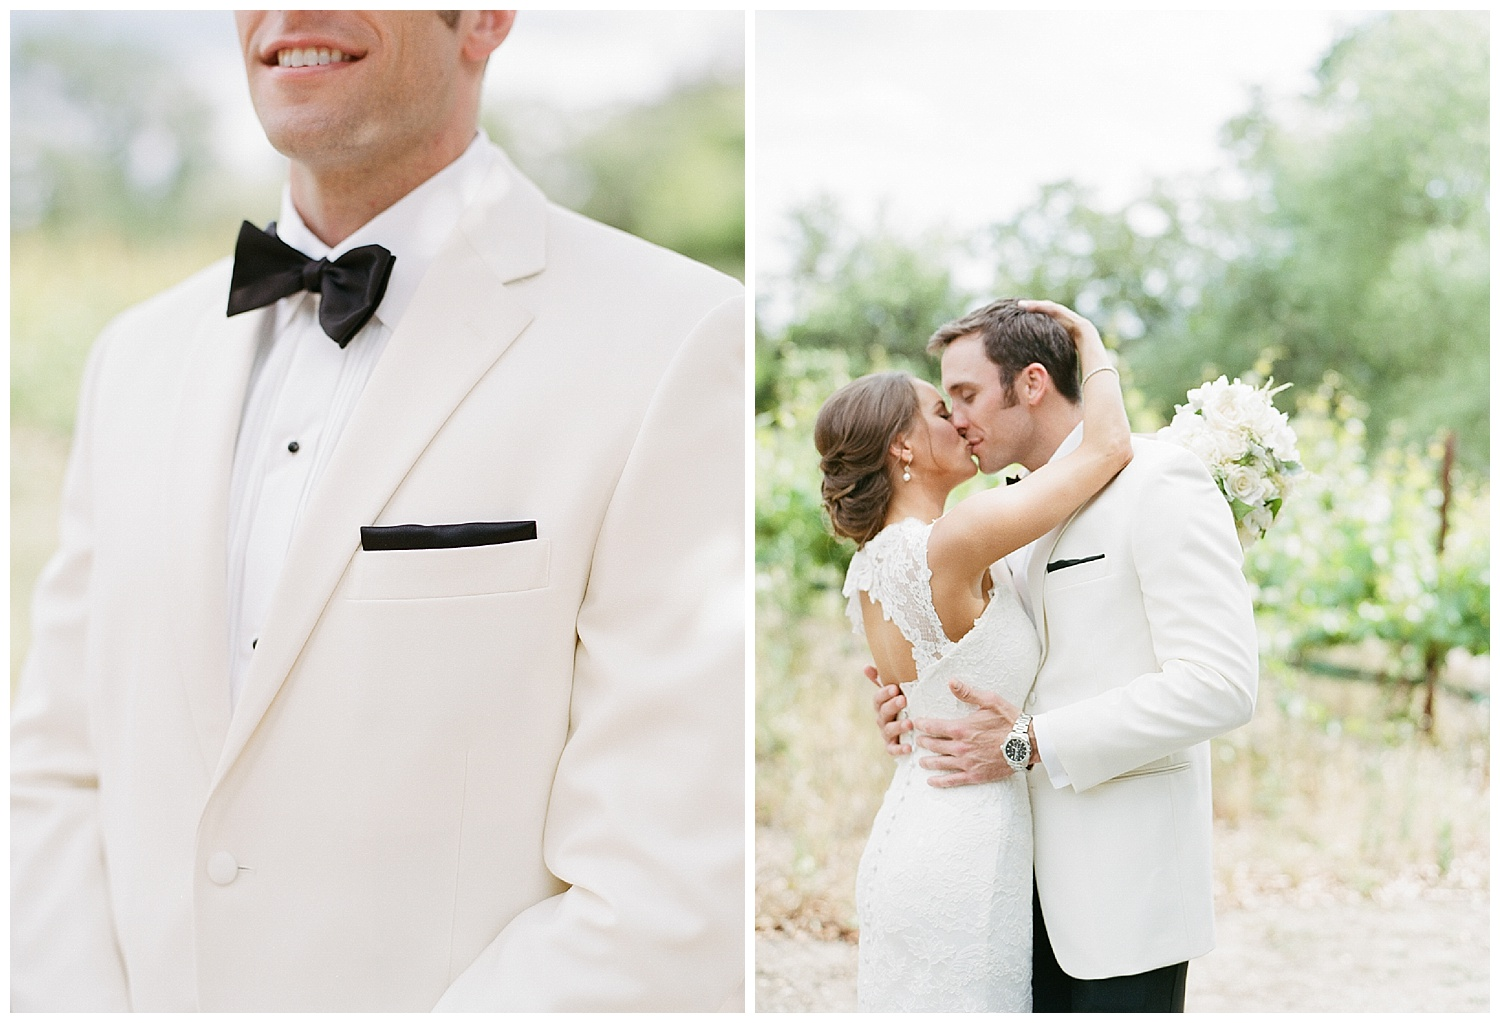 Groom's striking white tuxedo, bride and groom before the wedding at Vintage Estates, Yountville, CA; Sylvie Gil Photography